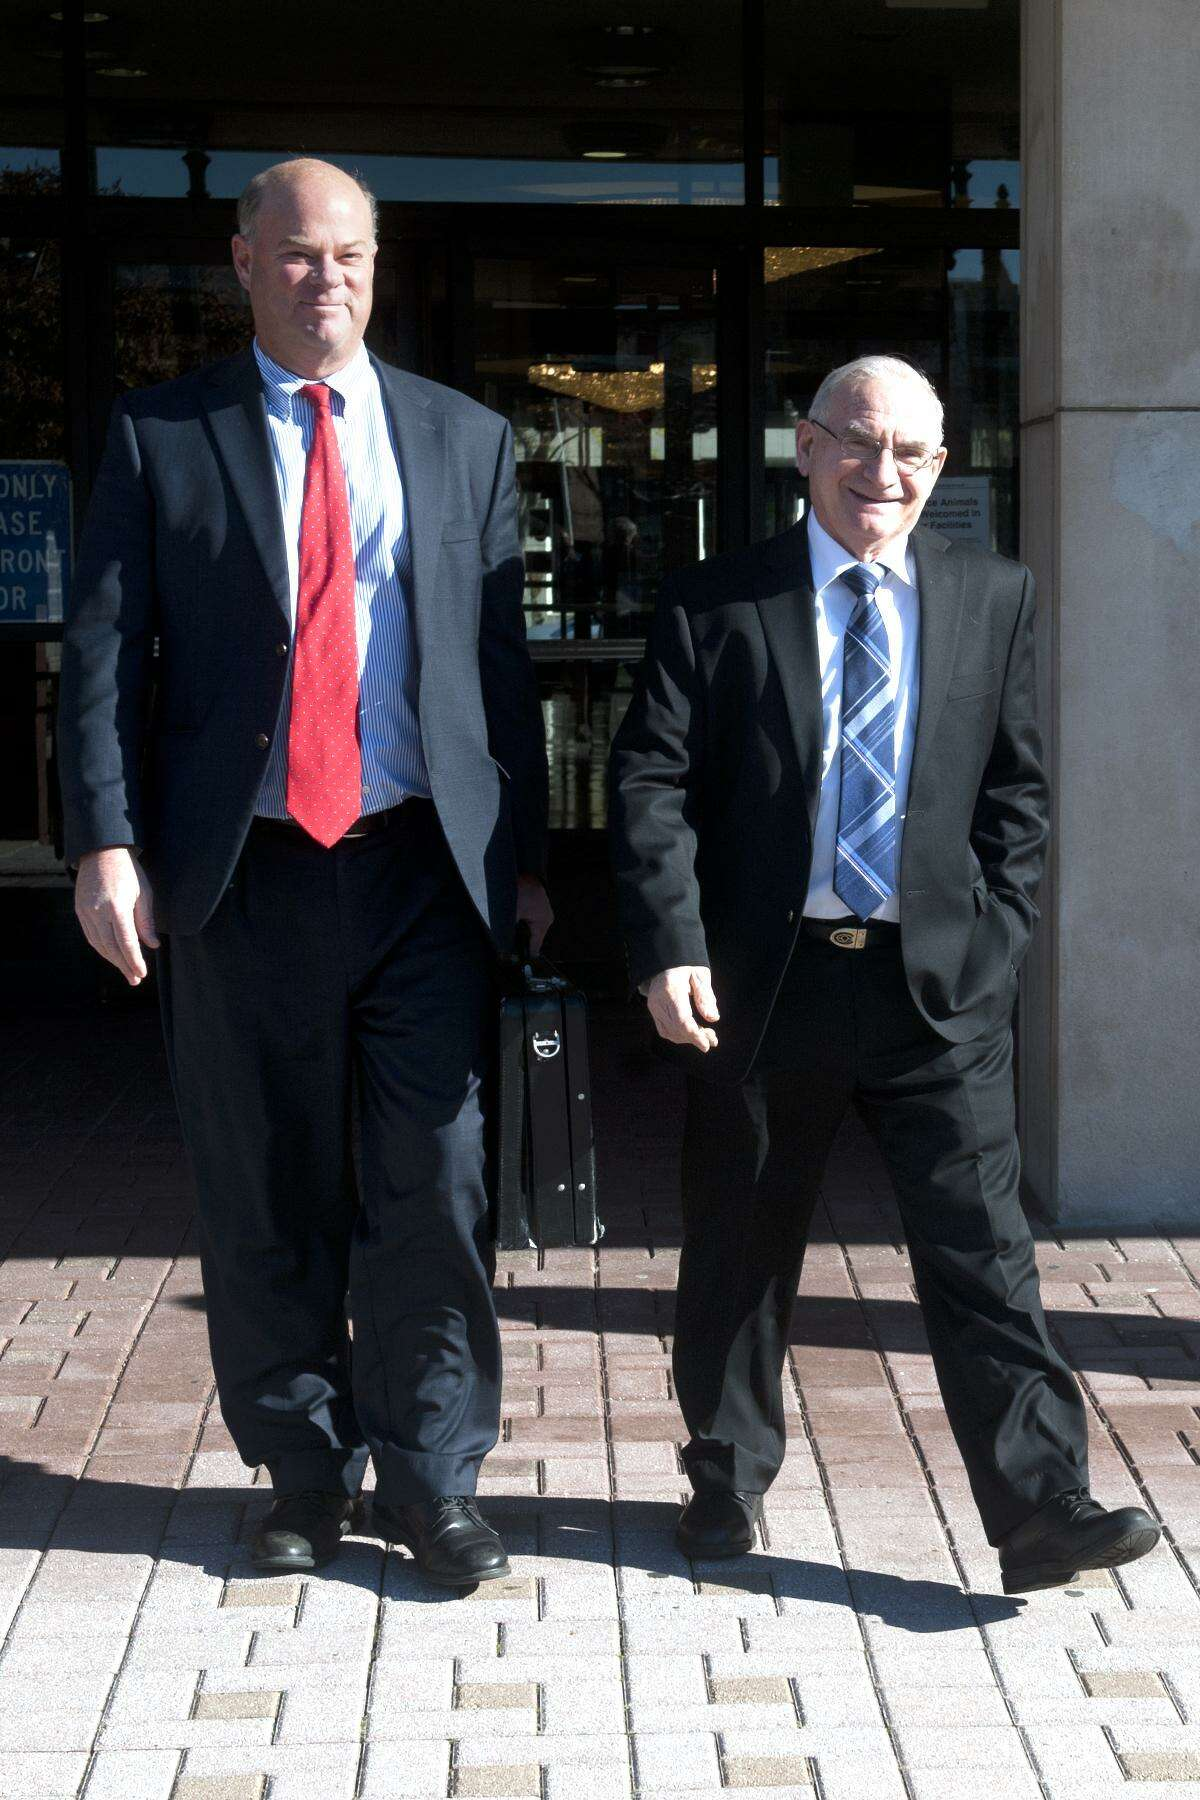 Democratic Town Committee Chairman Mario Testa leaves Bridgeport Superior Court last Friday following the first day of a hearing challenging the results of the recent special primary in the 133rd City Council District in Bridgeport, Conn. Nov. 27, 2017. Testa is seen here with his attorney Robert Golger.